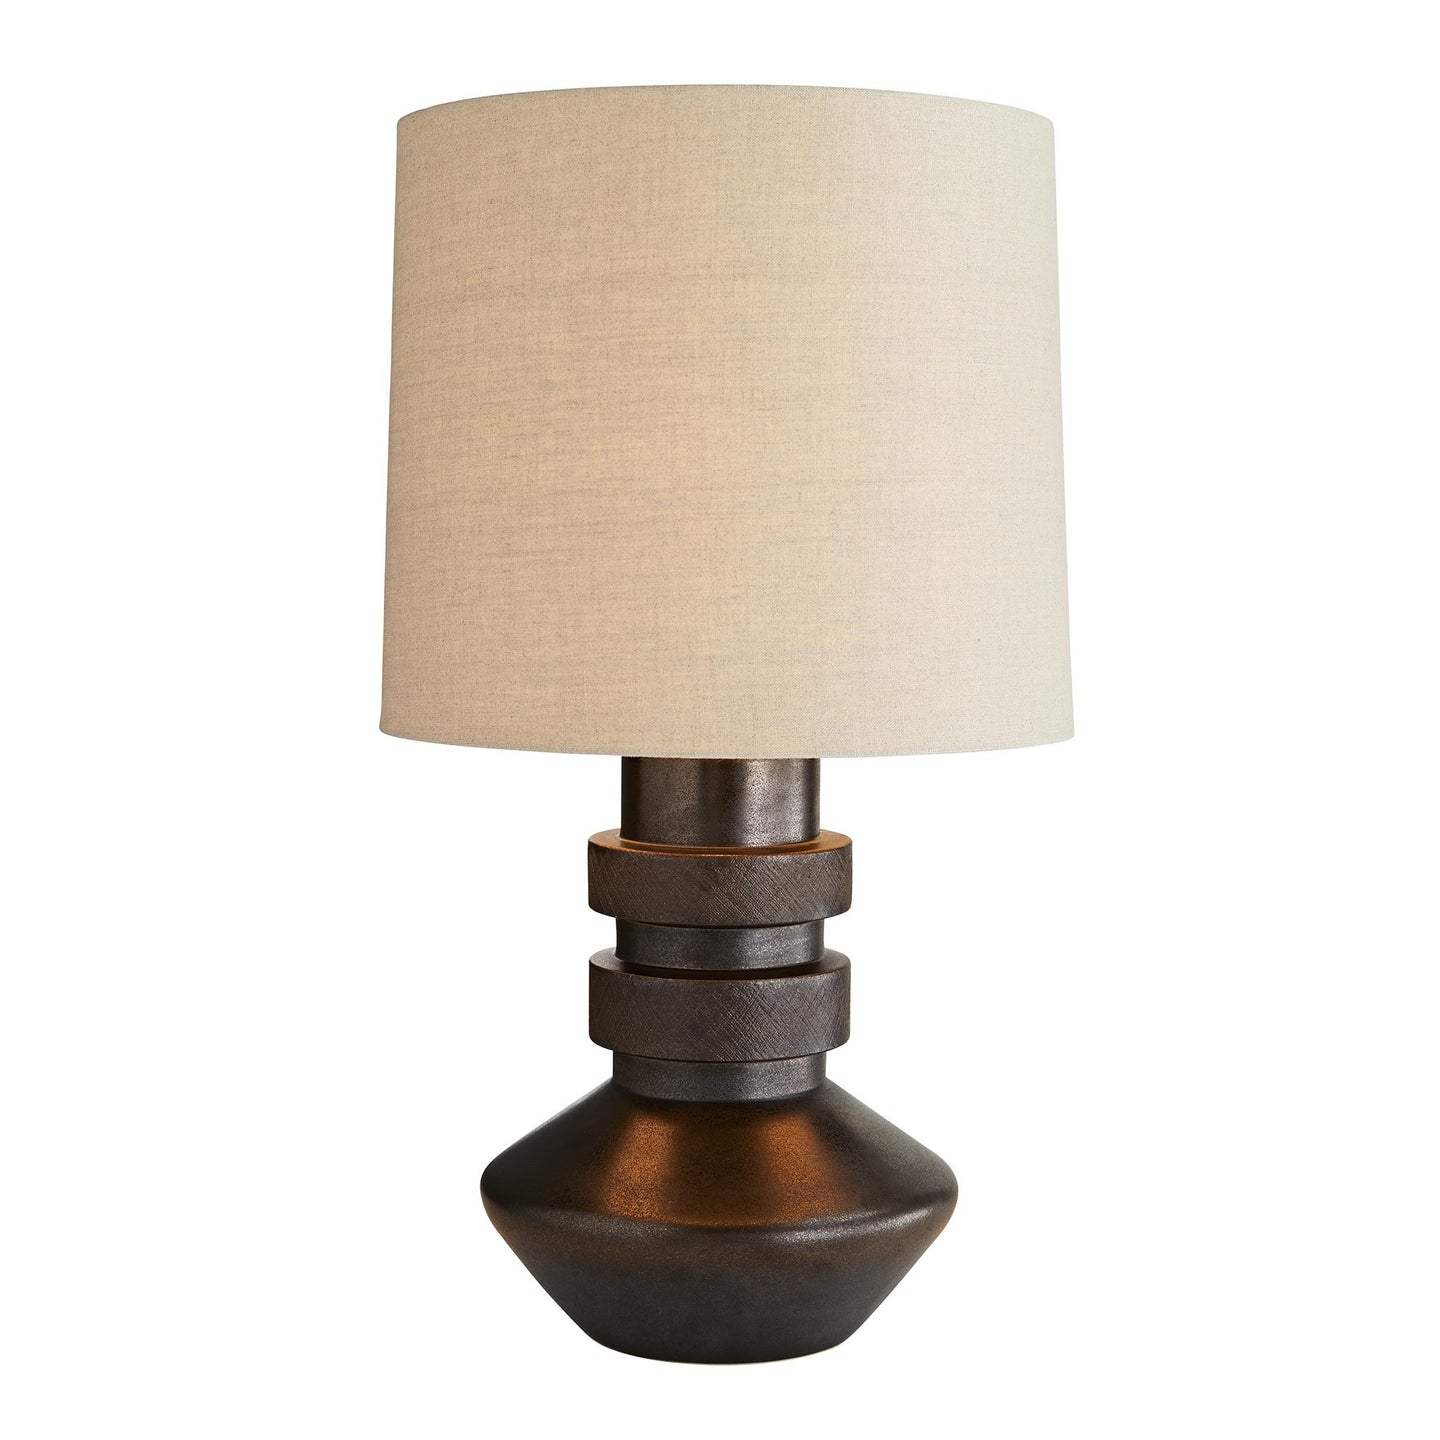 Spencer Lamp